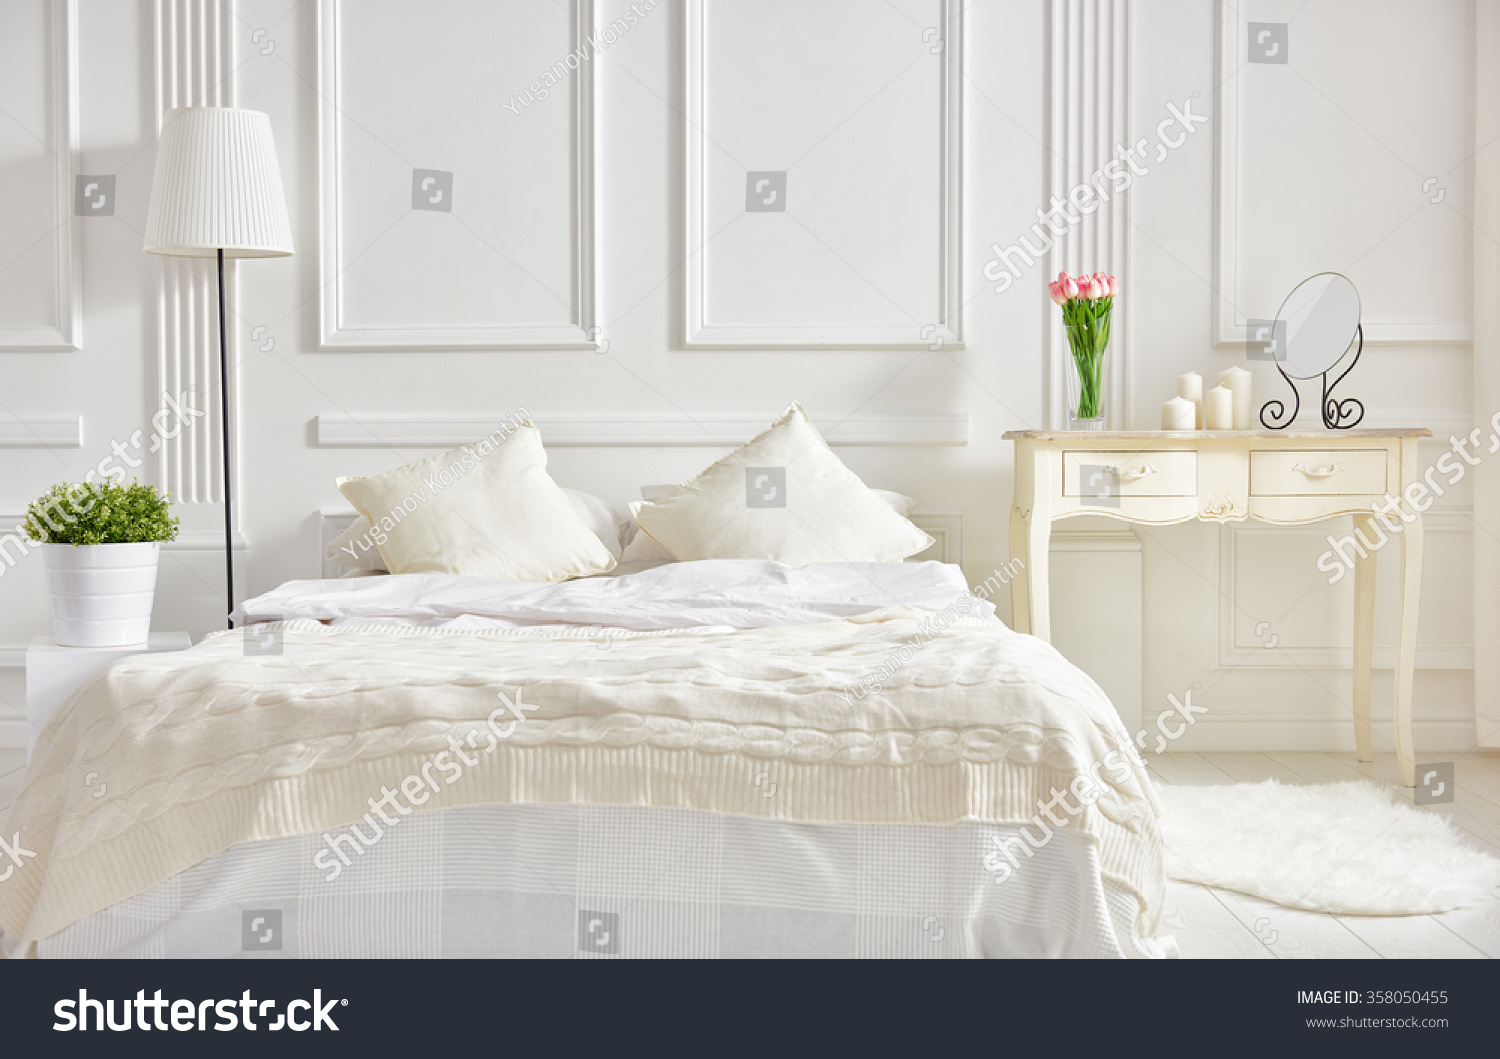 classic bedroom colors bedroom in soft light colors big comfortable bed 11133